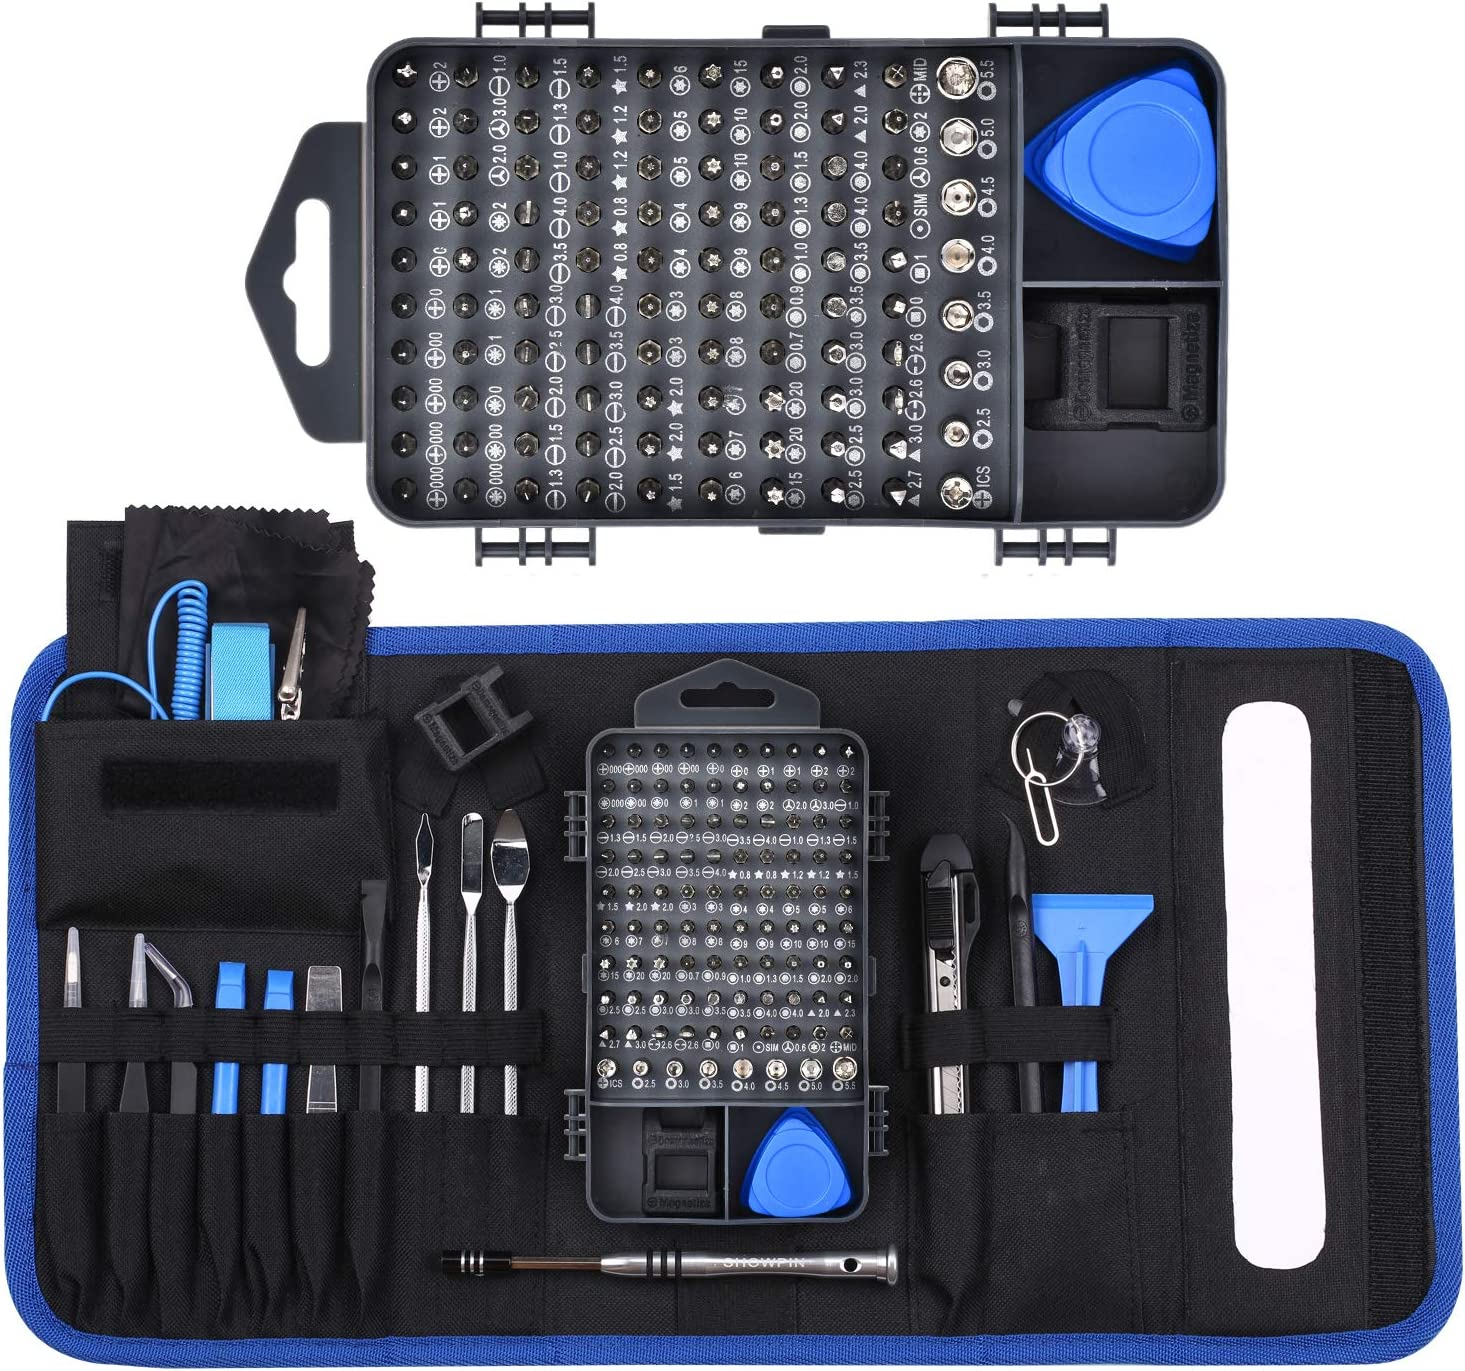 139 in 1 Precision Screwdriver Set, Professional Laptop, PC Repair Tool Kit, with 98 Magnetic Bit and 41 Repair Tools, Suitable for Cell Phone, Iphone, Tablet, Macbook, Xbox and Other Products Repair